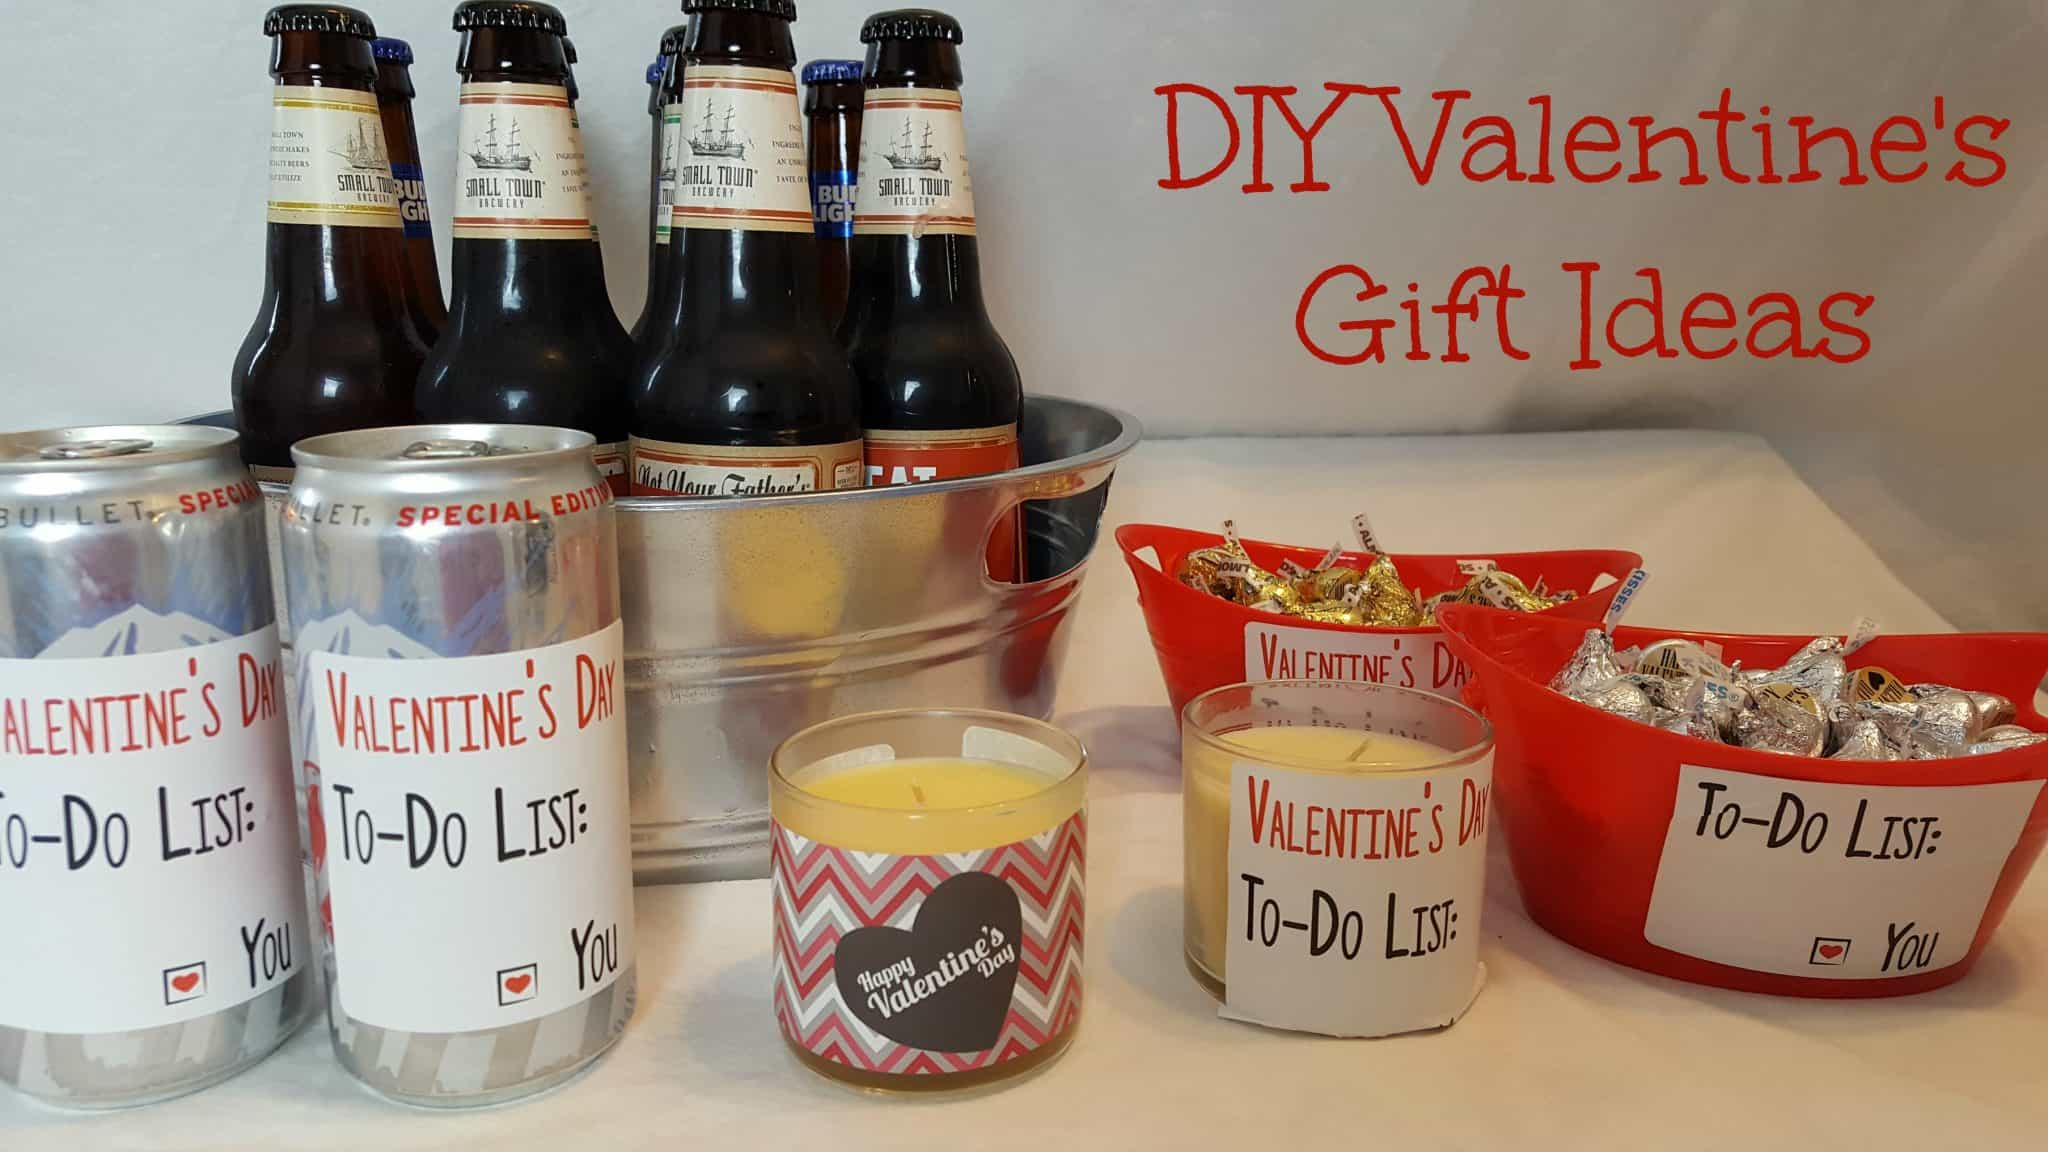 DIY Valentine's Gift Ideas | Life with Heidi